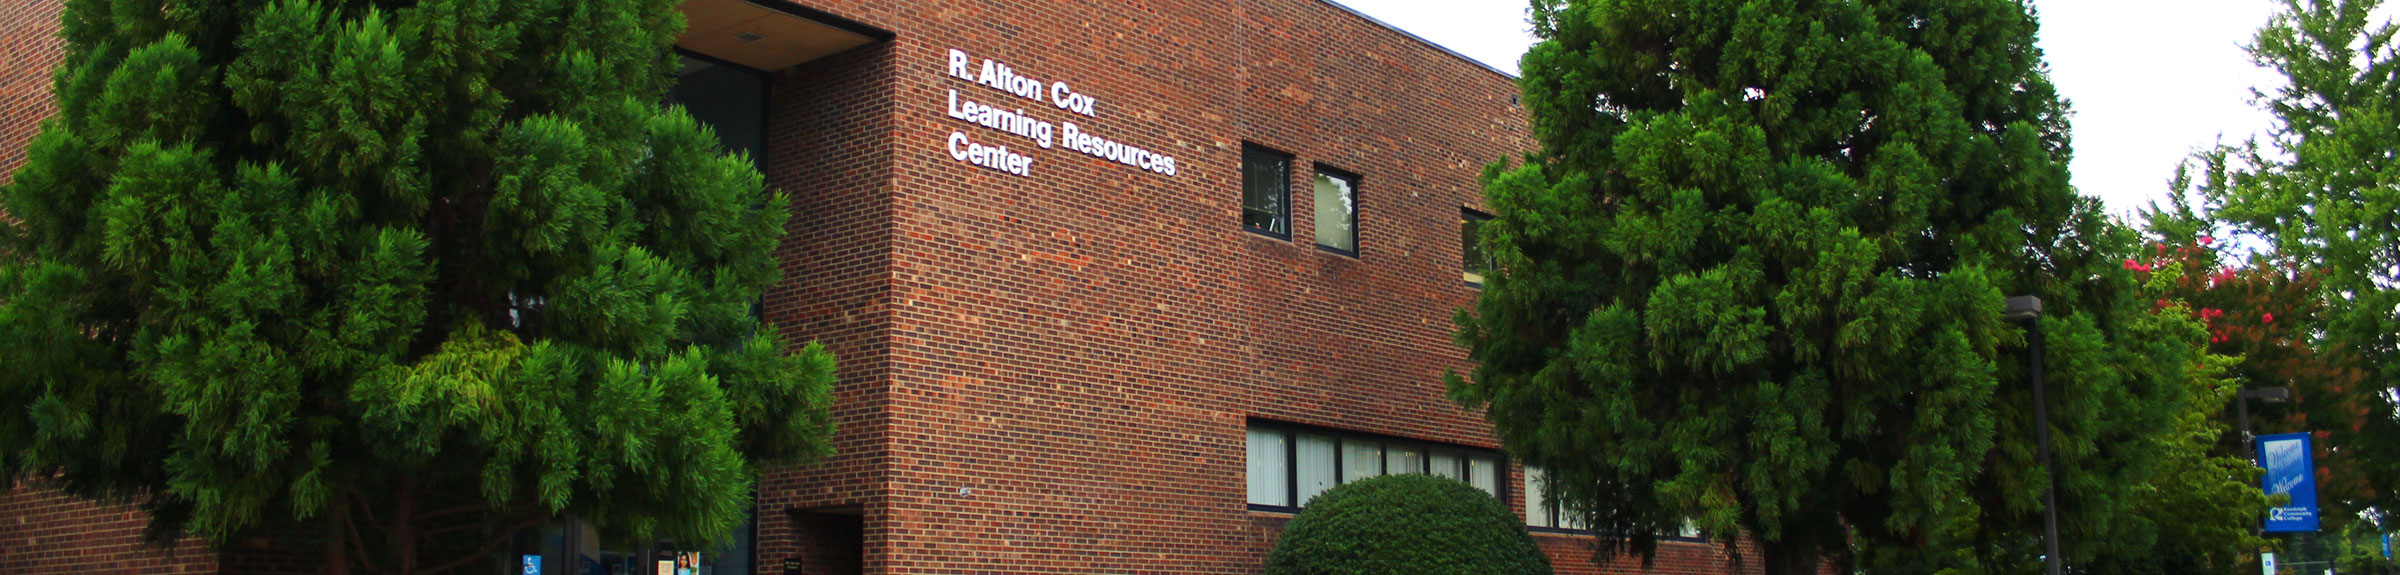 R. Alton Cox Learning Resources Center